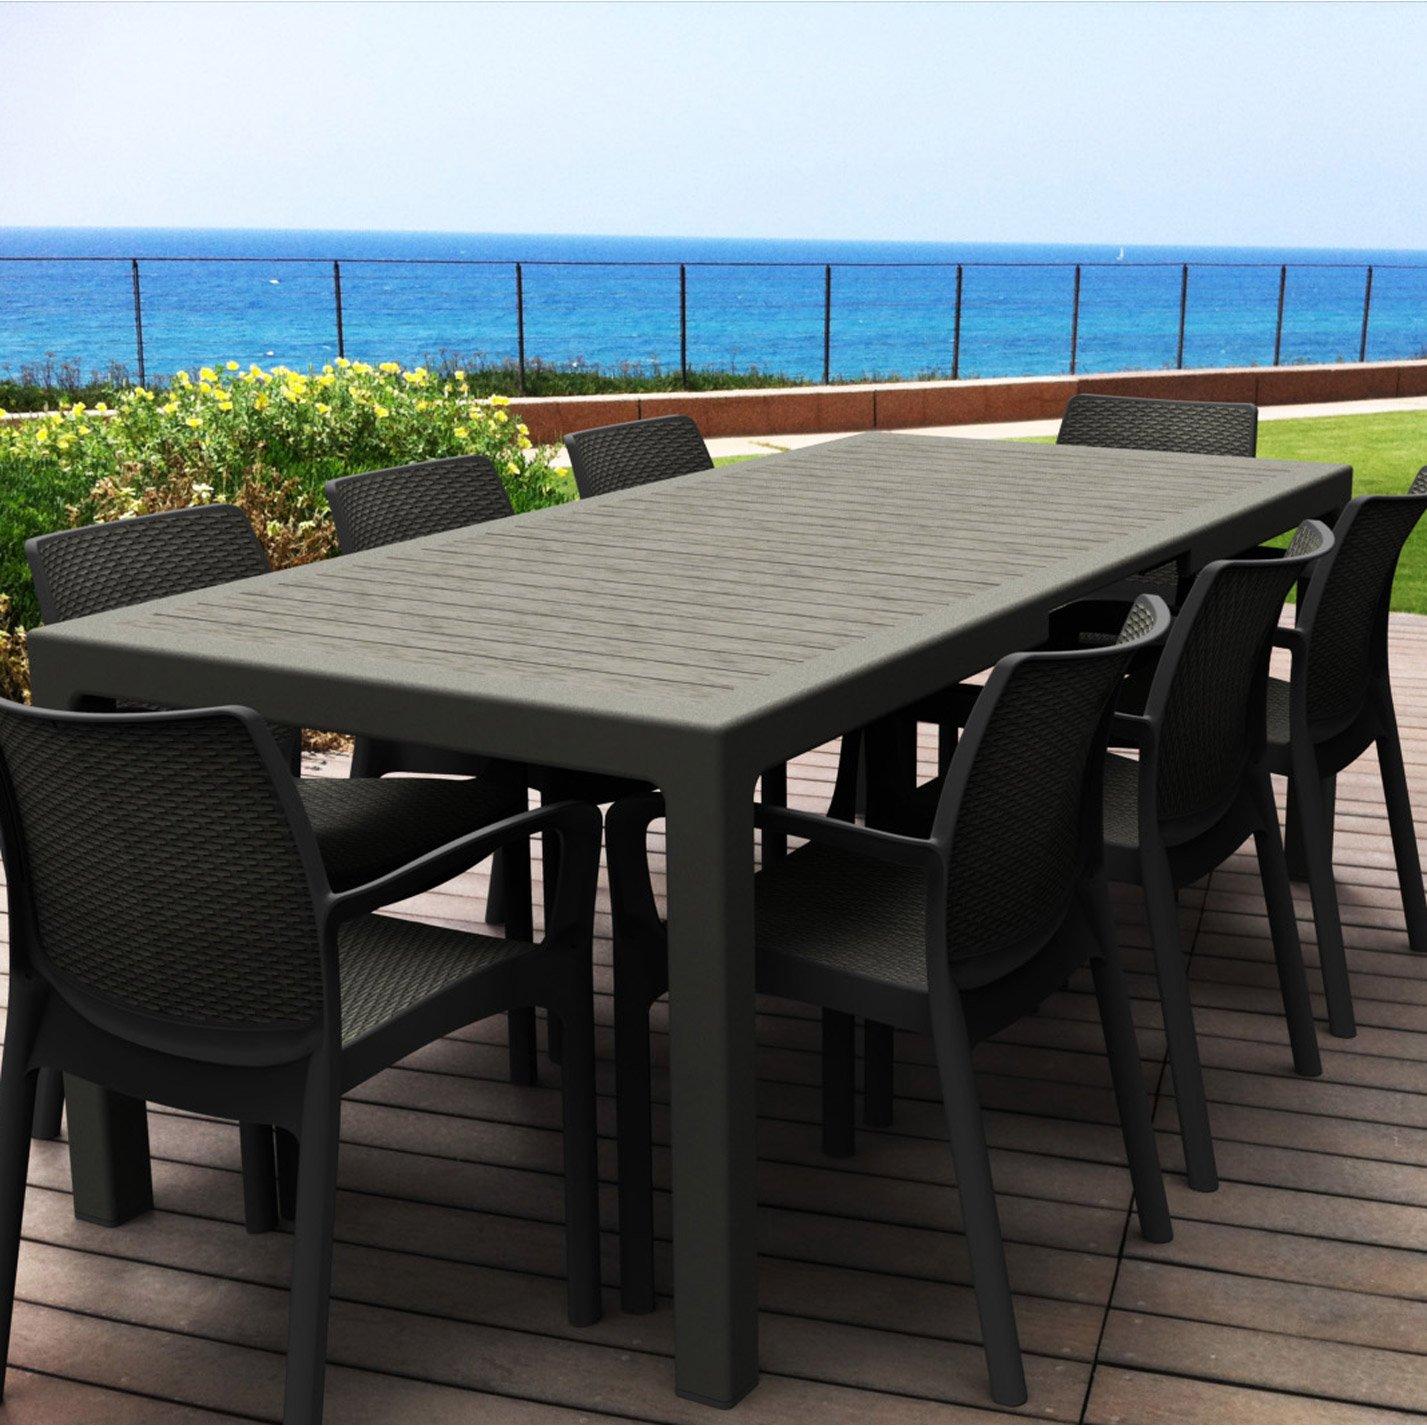 Table De Jardiland Table Jardiland Aluminium De Jardin Table De Jardin Aluminium 8nOkXw0P